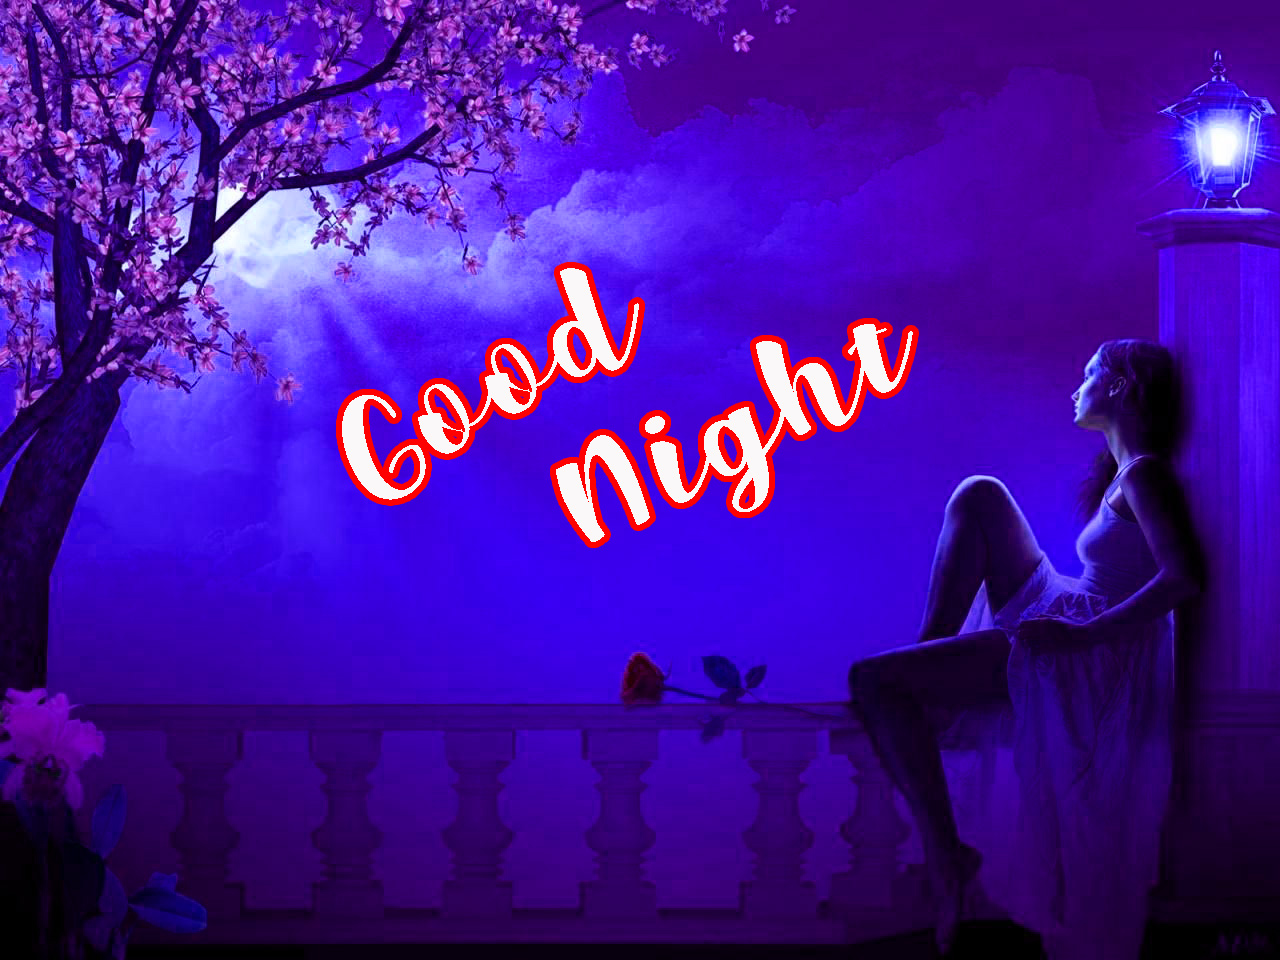 Good Night Images Wallpaper Pics Photo Download